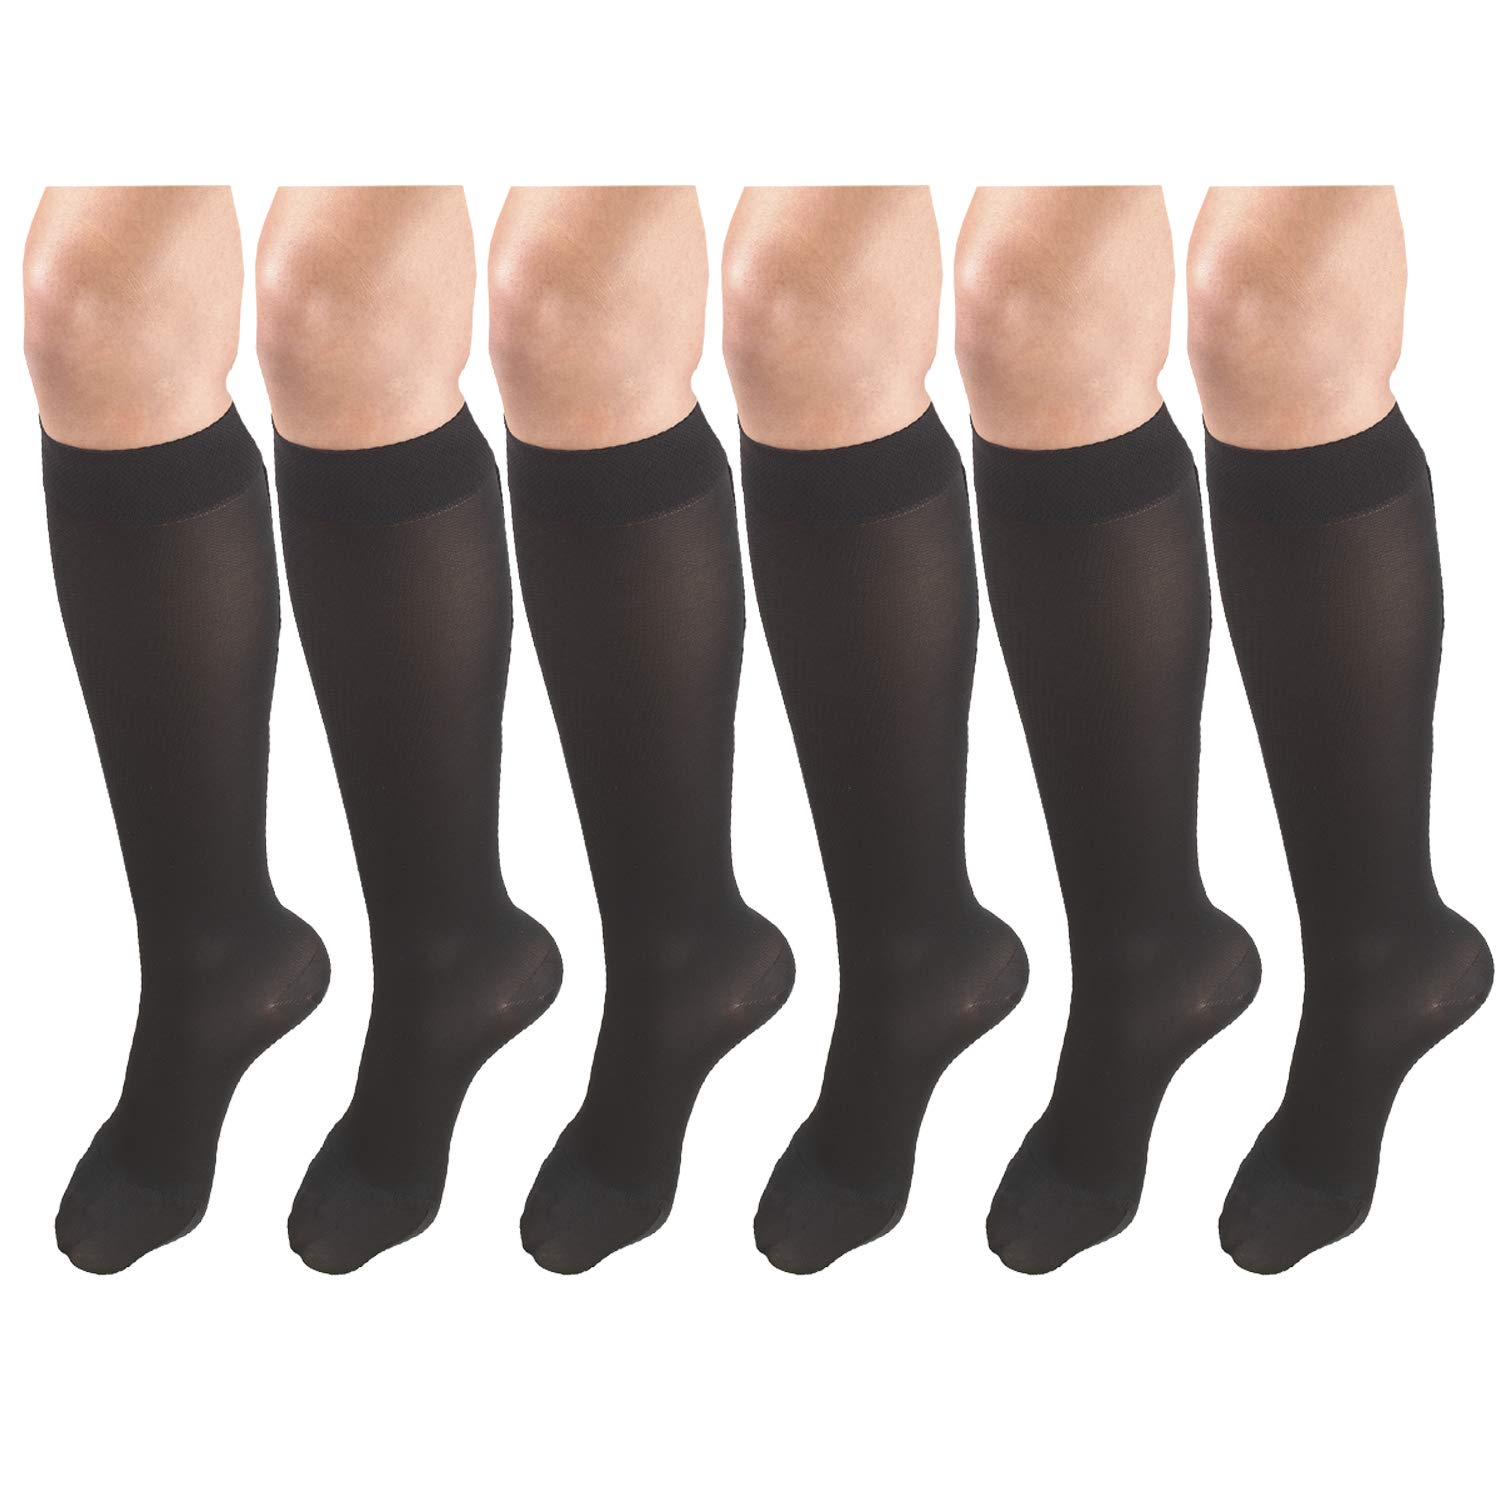 Women's Compression Stockings, 20-30 mmHg, Knee High Length, Closed Toe, Opaque Black Large (6 Pairs)